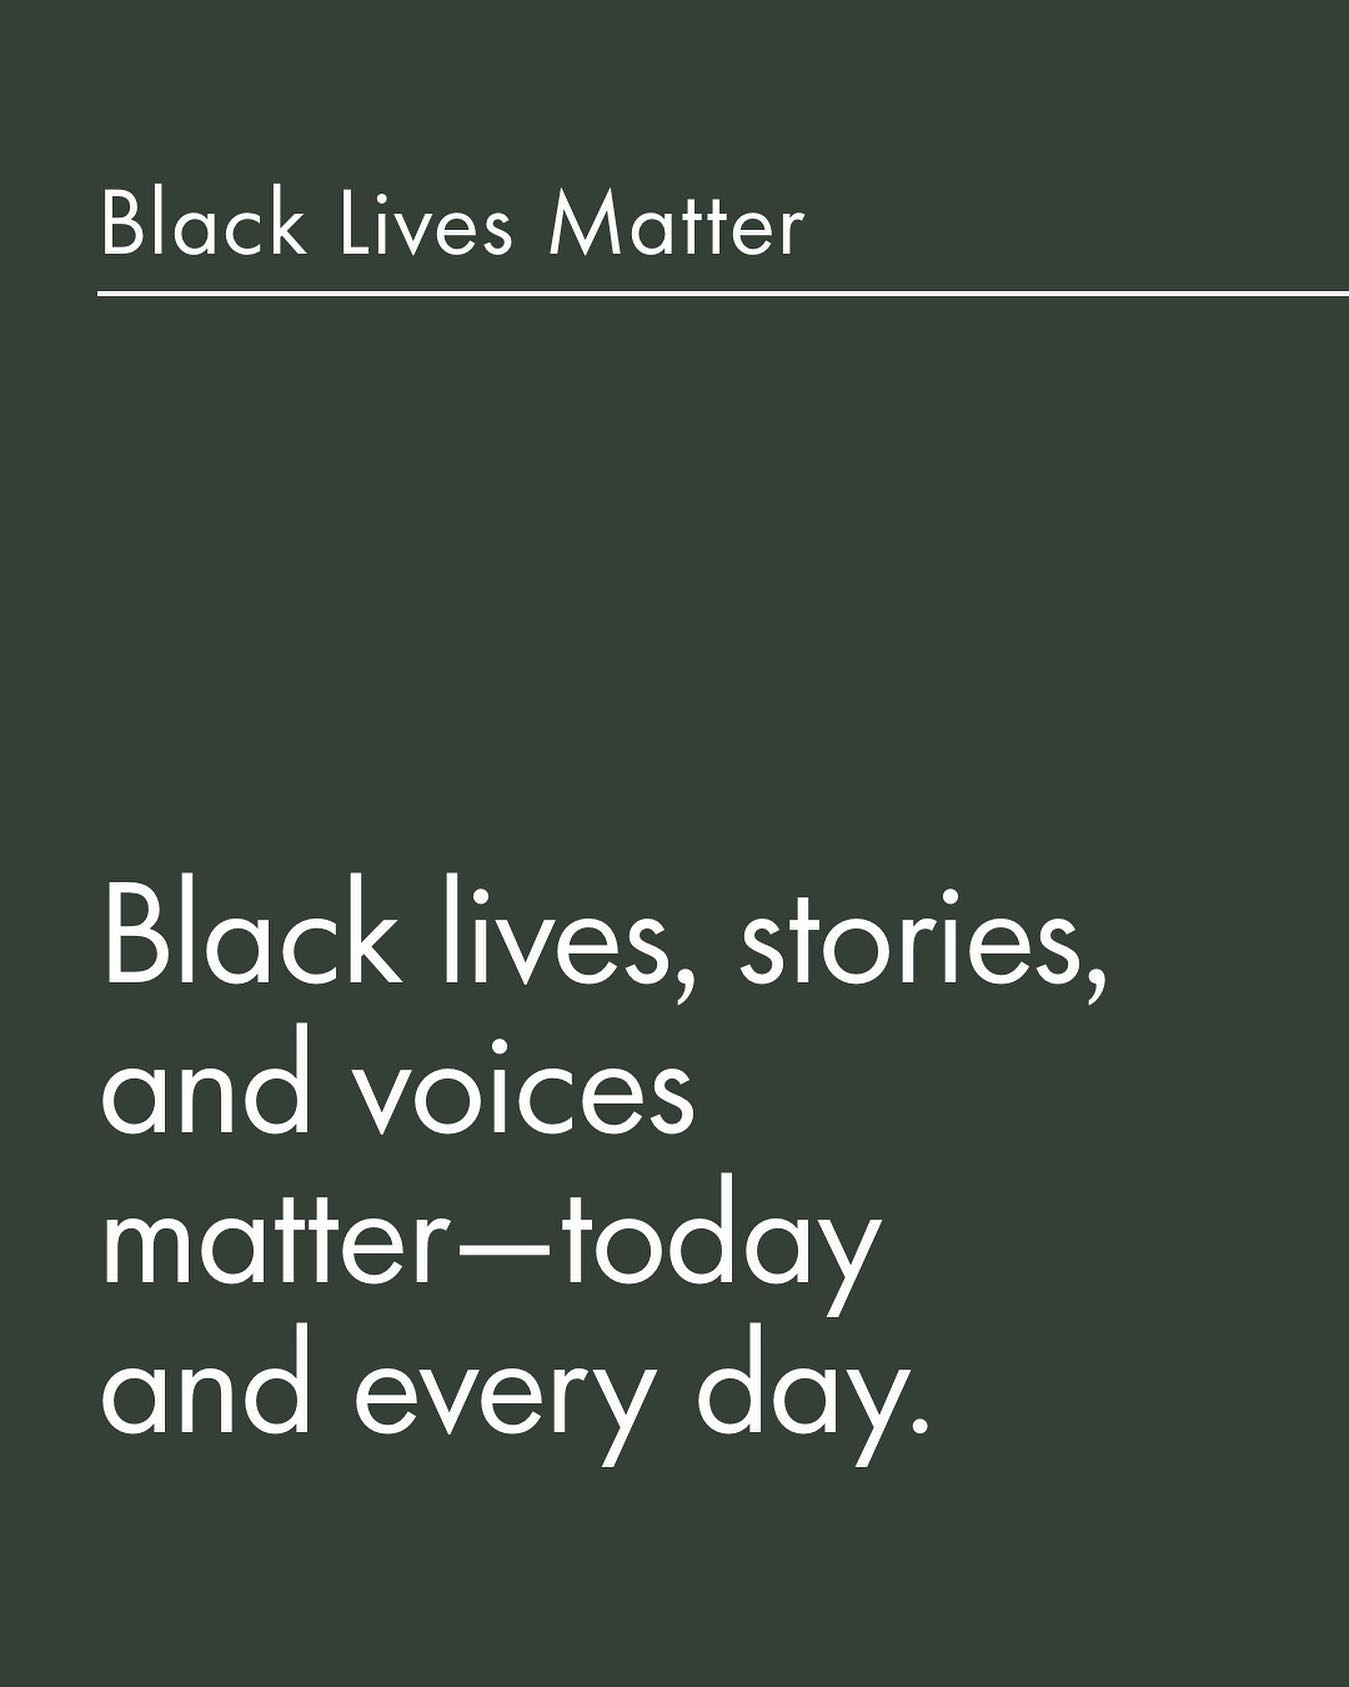 @indigo instagram post: Black lives, stories, and voices matter—today and every day. As people, we pledge to take this watershed moment to li...